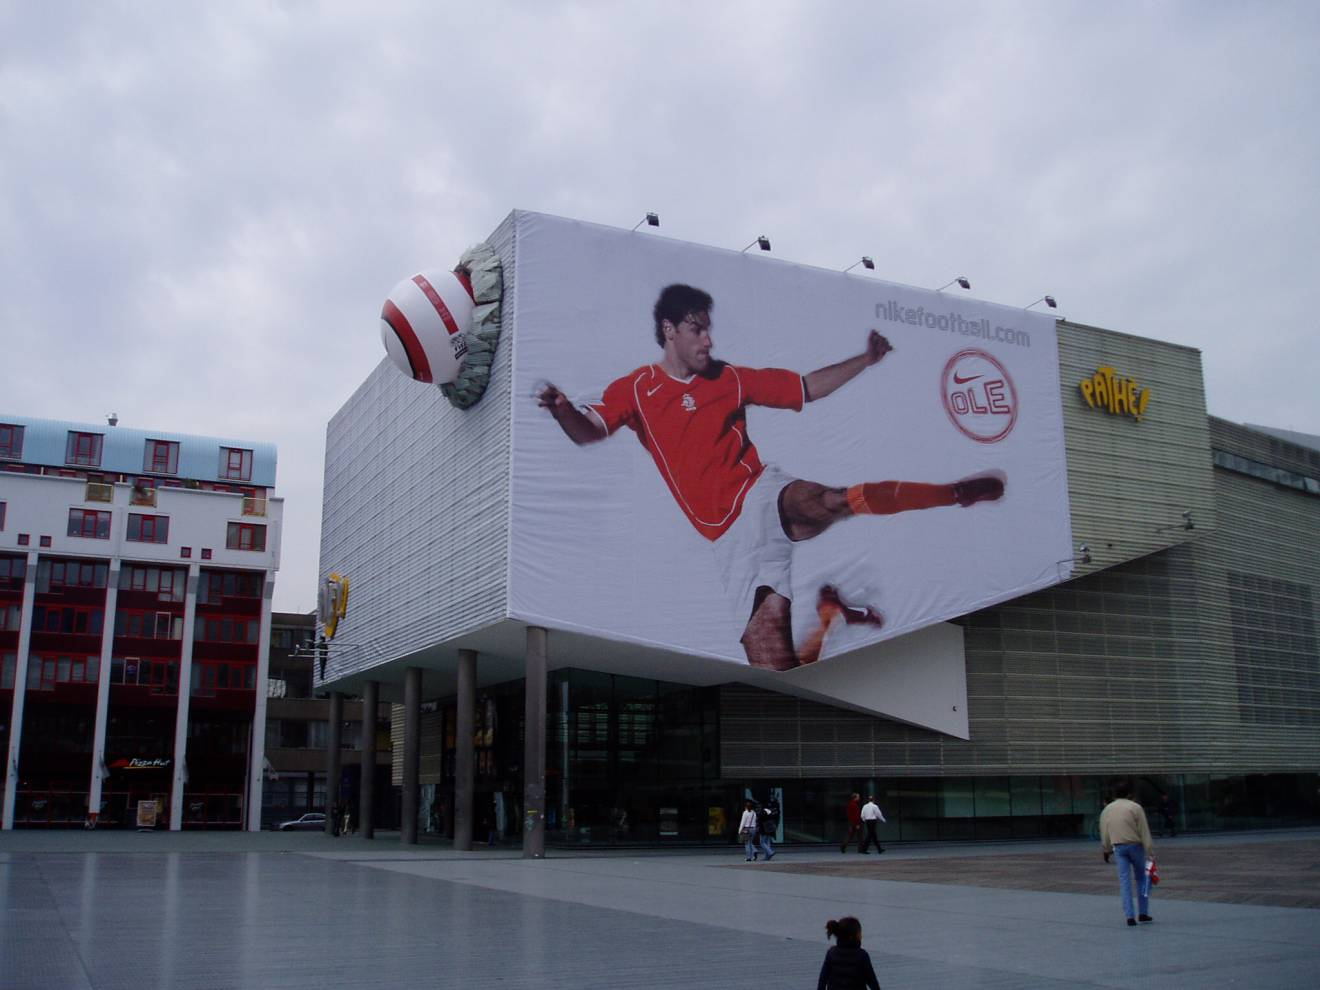 Combine print and inflatable Nike, 2D and 3D, sport, football, dynamic X-Treme Creations